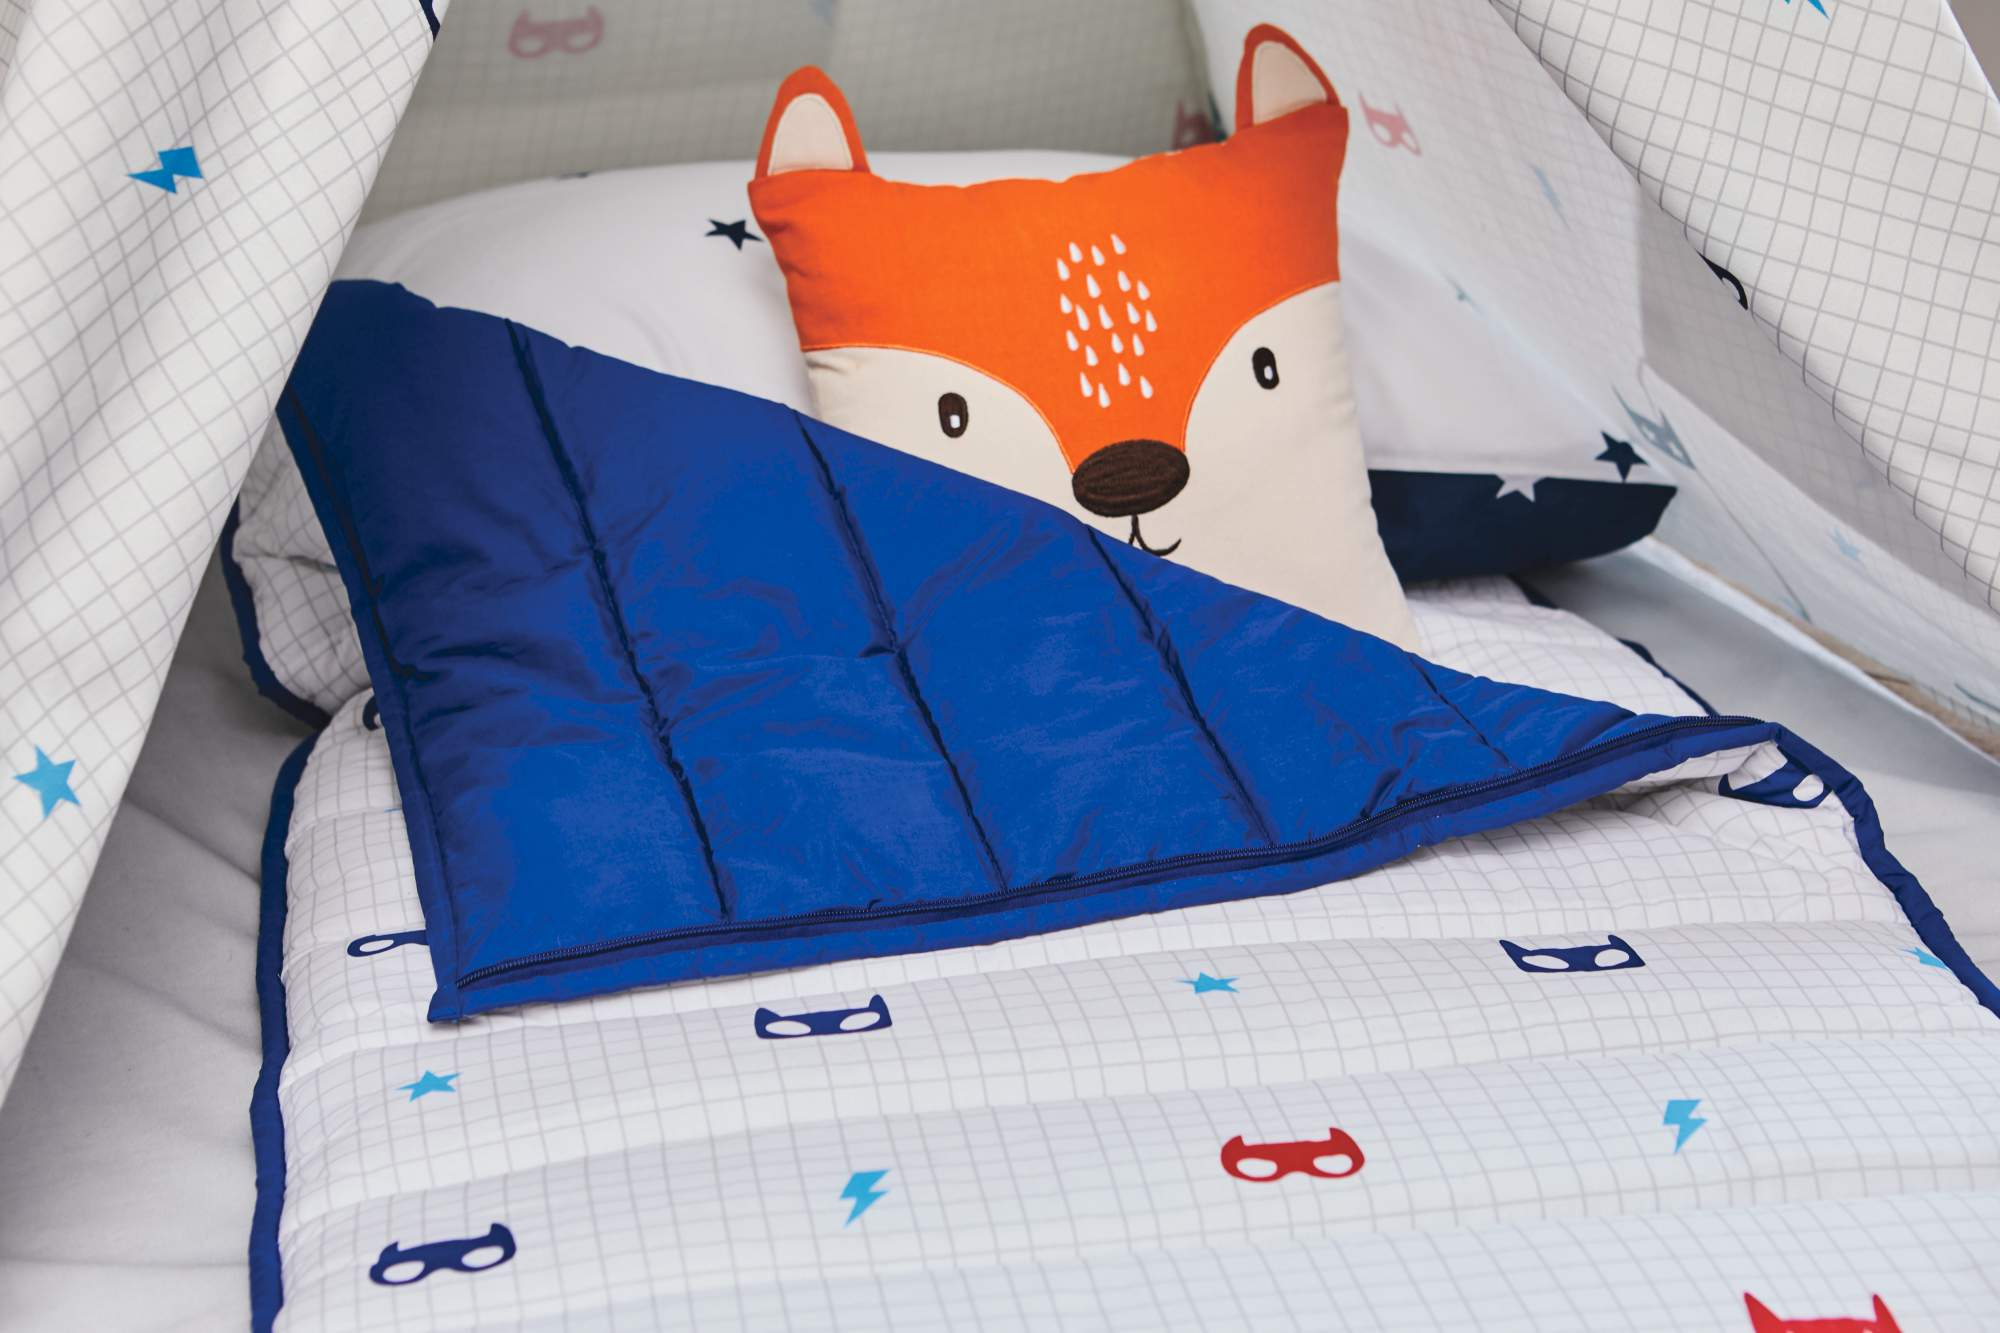 Get ready for friends and family staying over at Christmas with our spare beds and sleeping bags